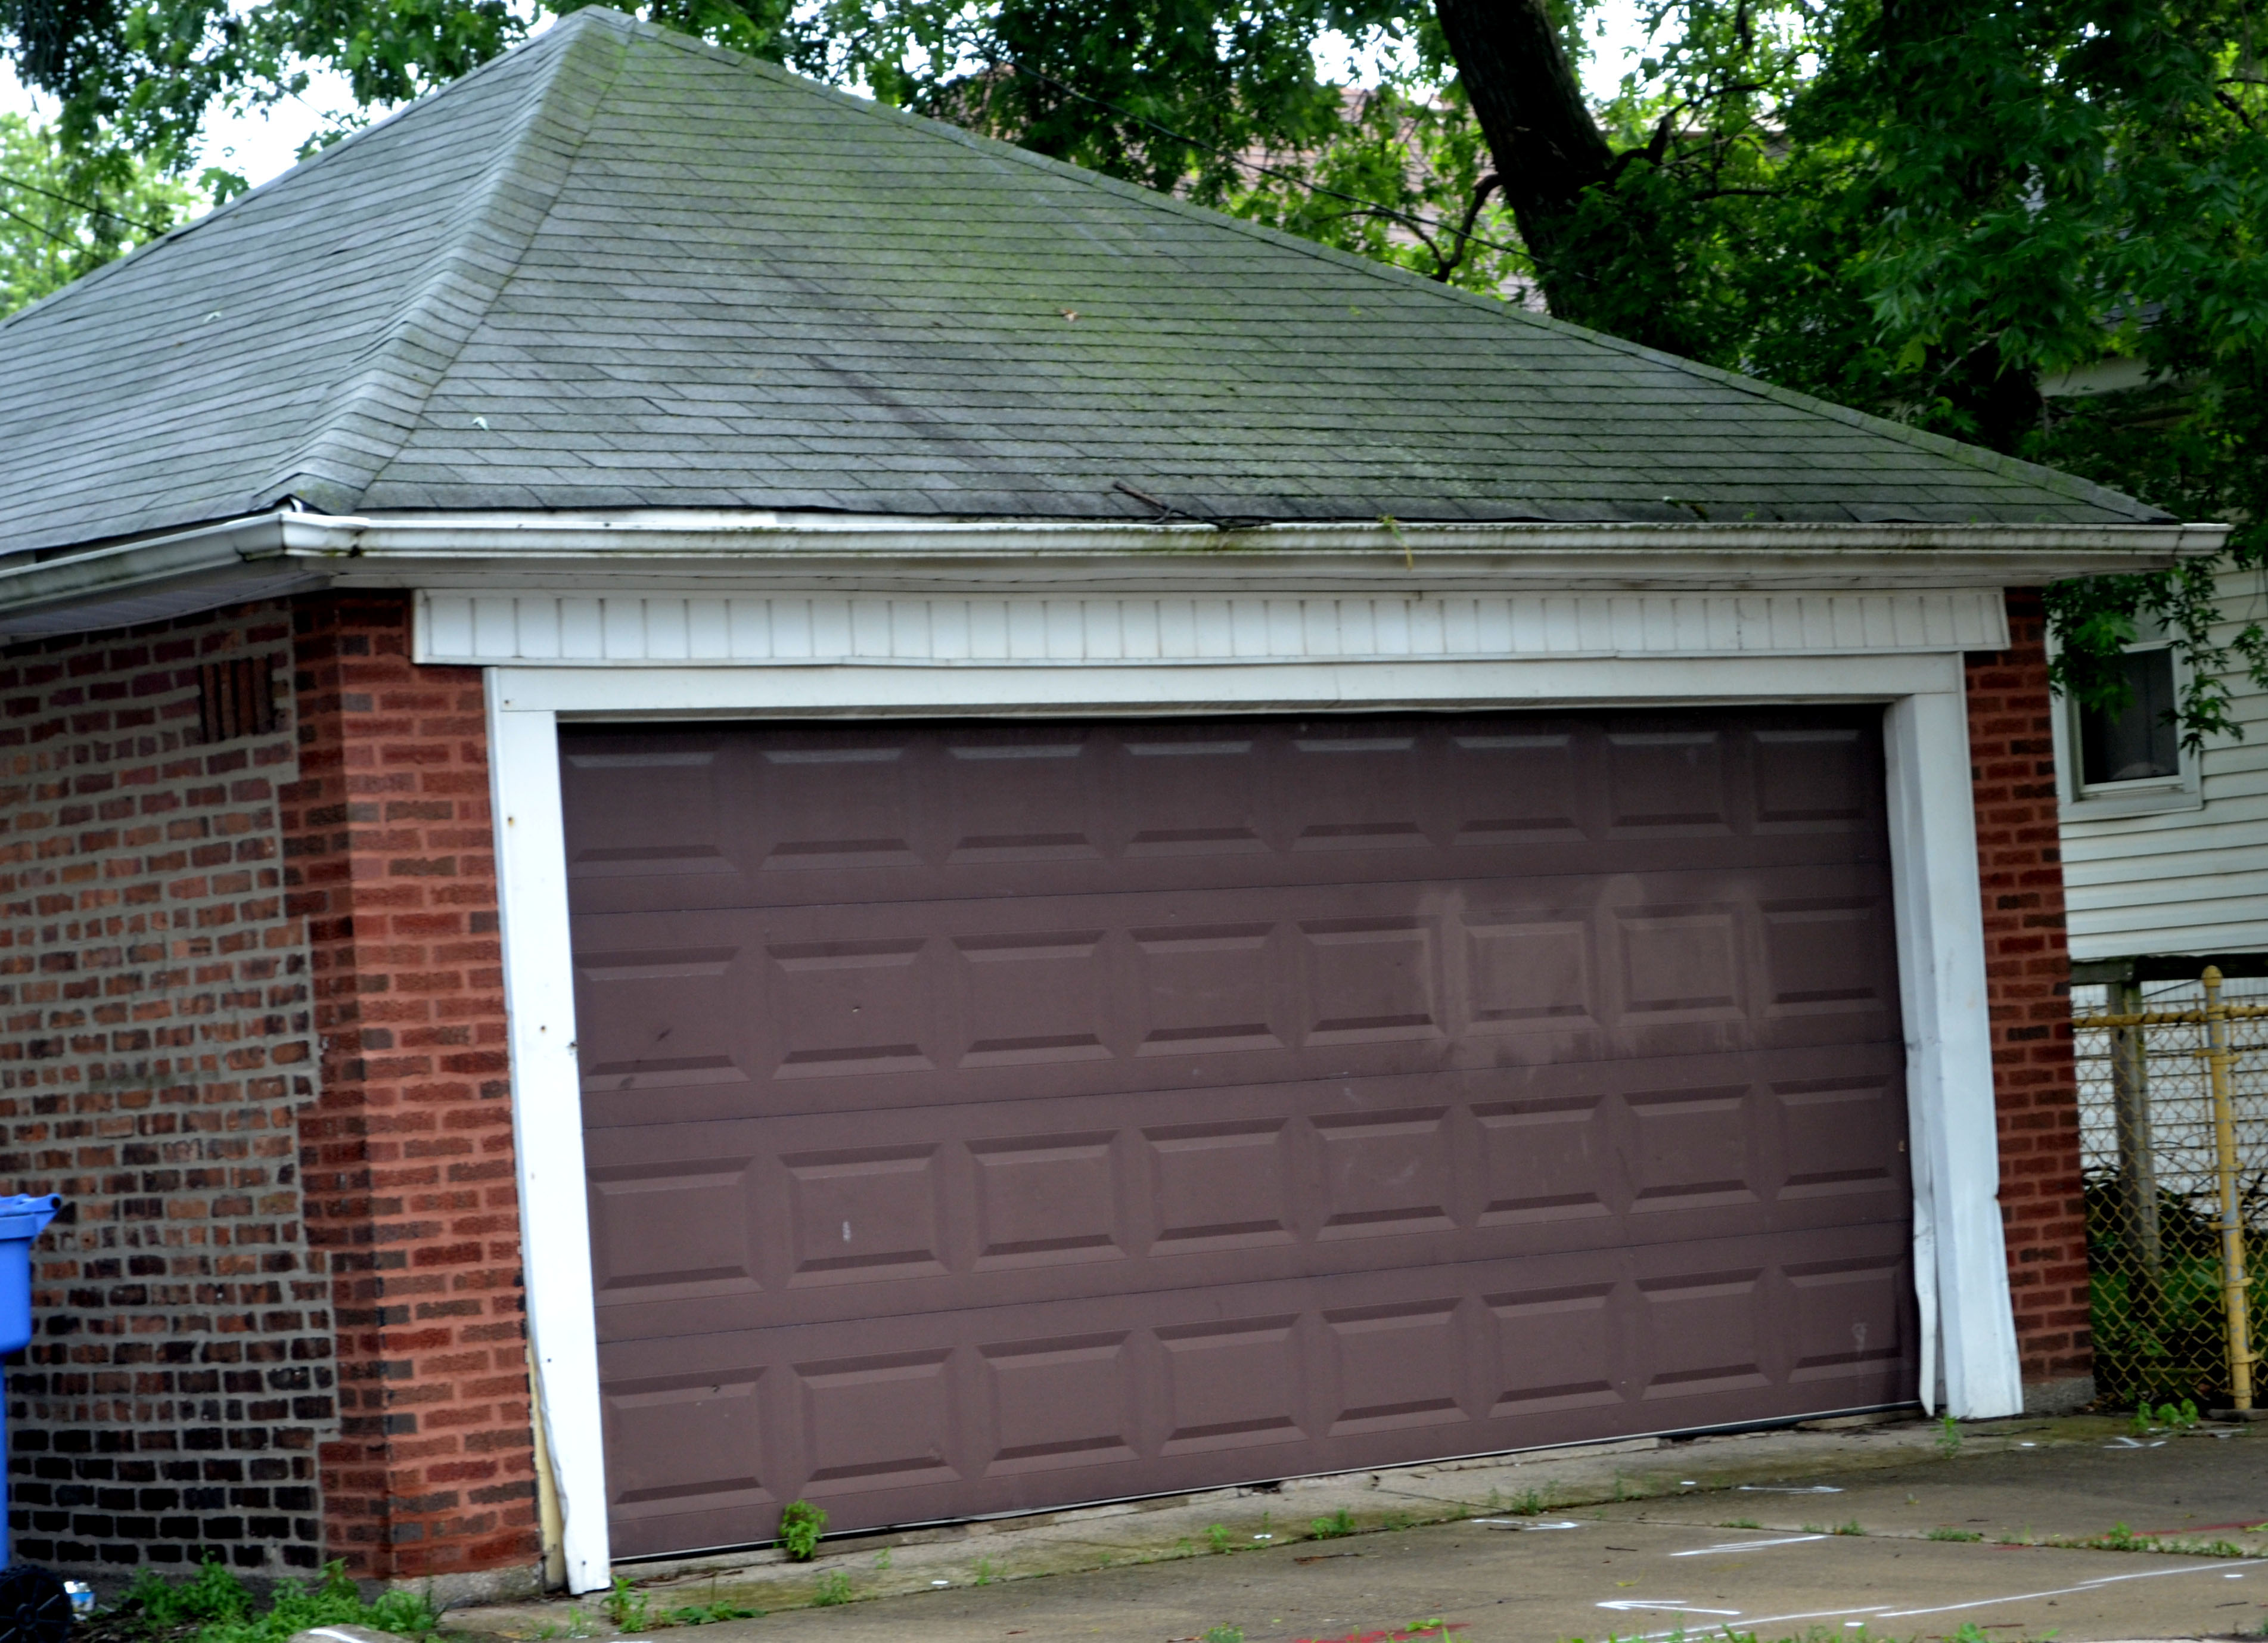 Garage burglaries were reported in Little Village May 11 and 16, 2020.